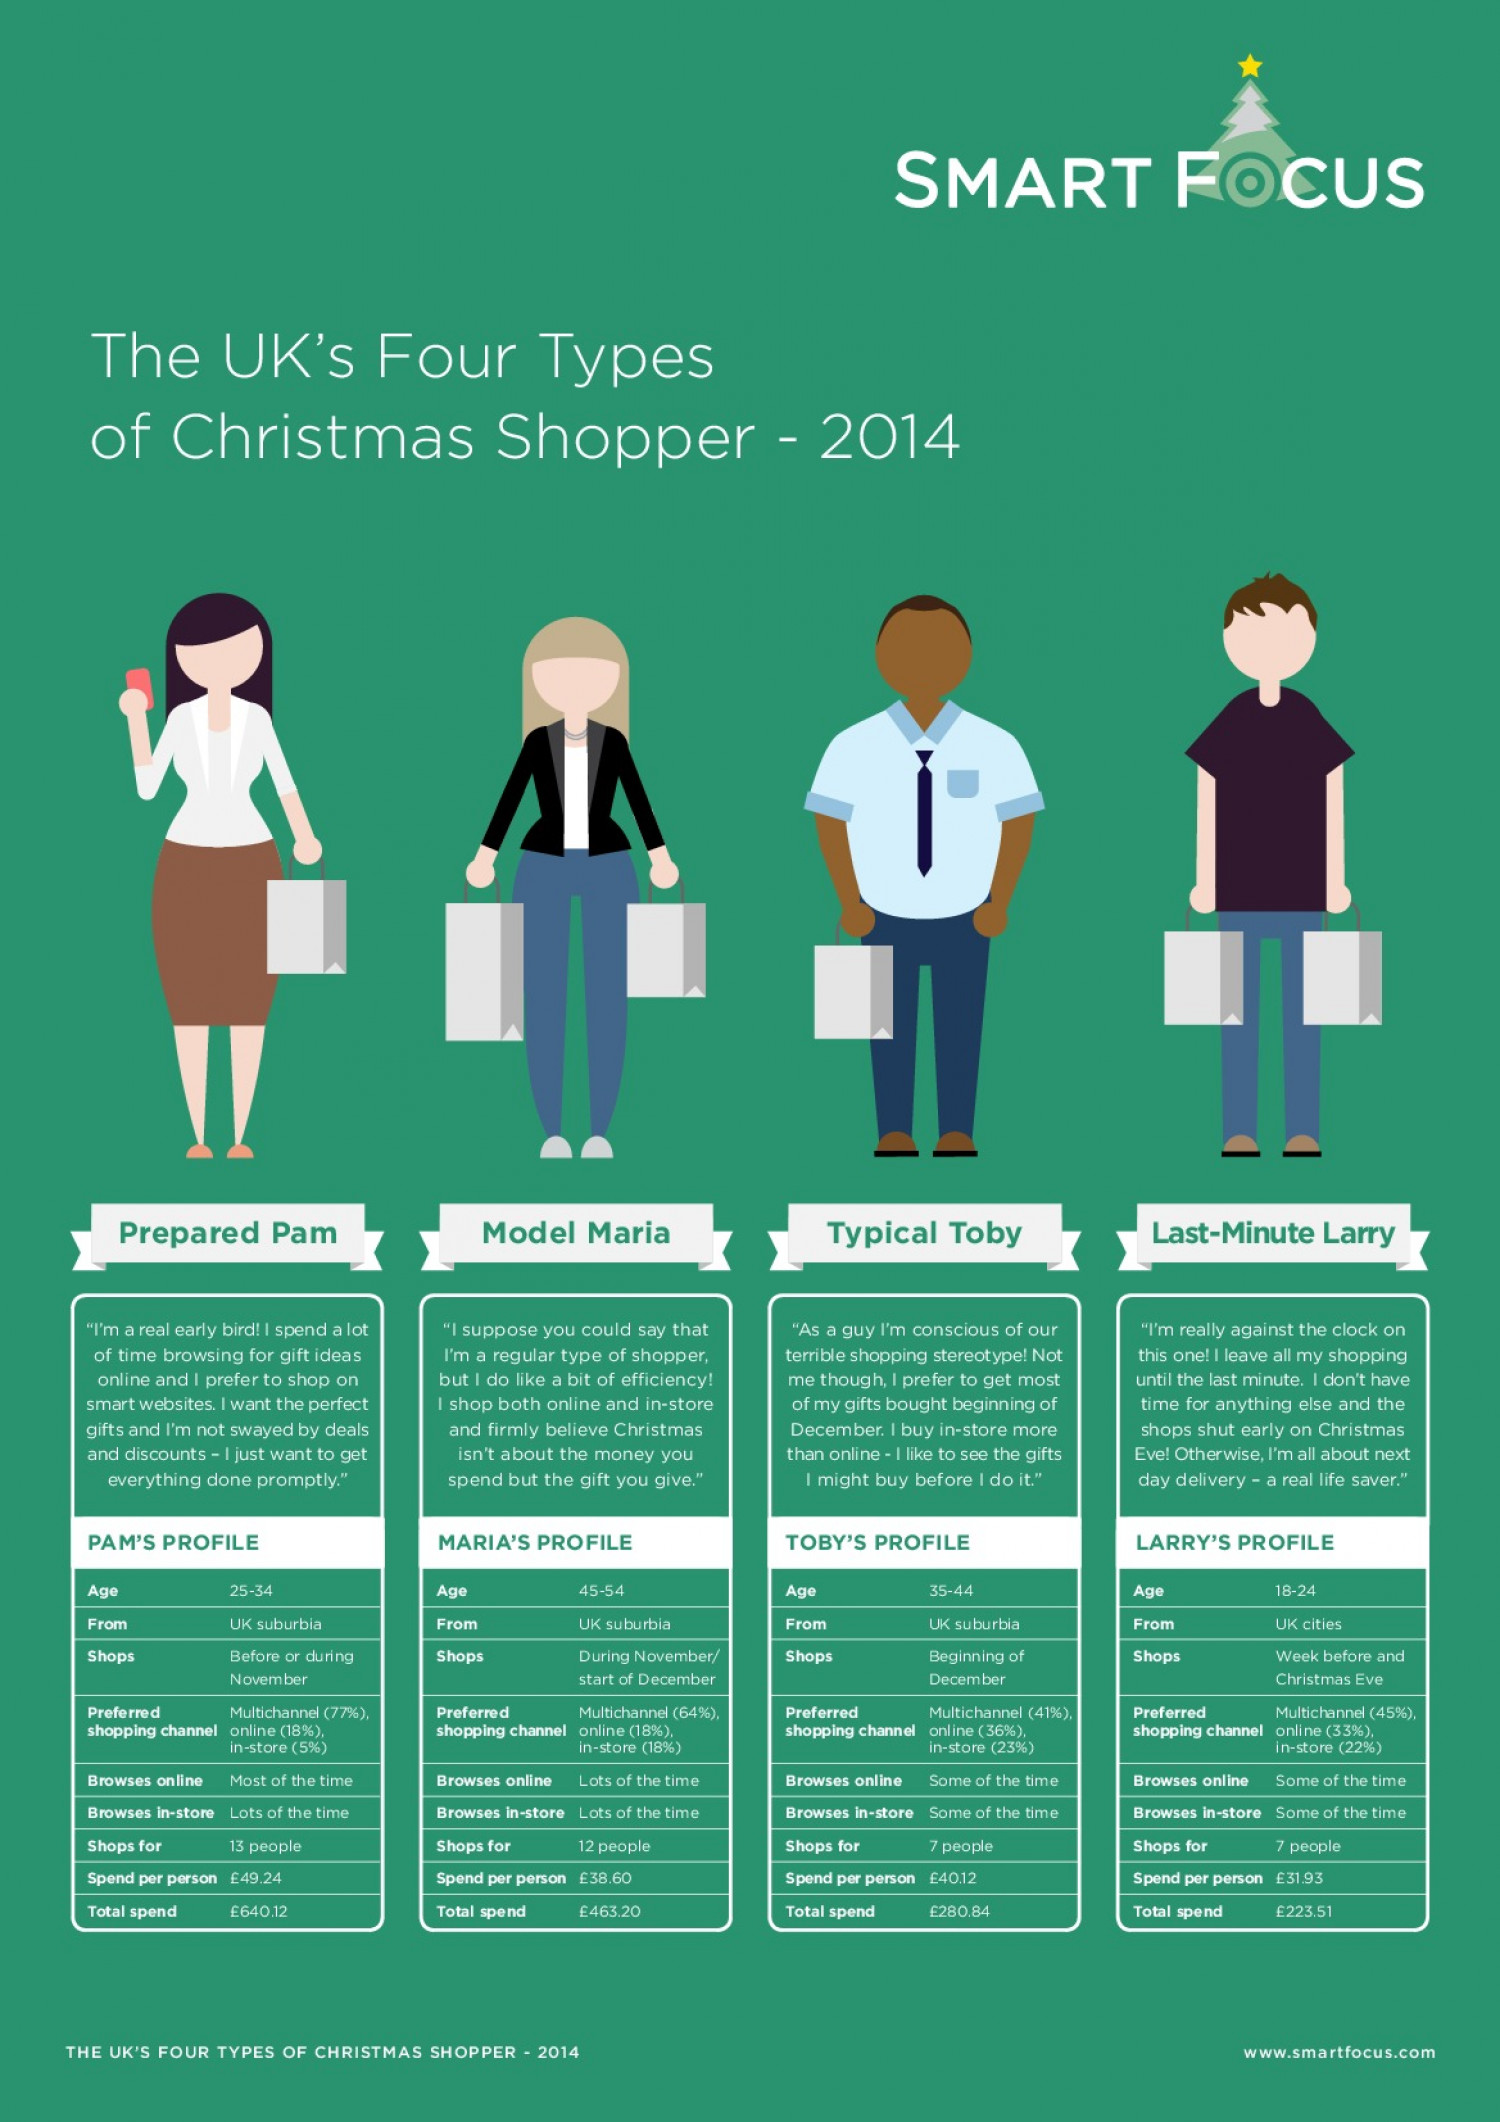 The Four Types of Christmas Shopper Infographic